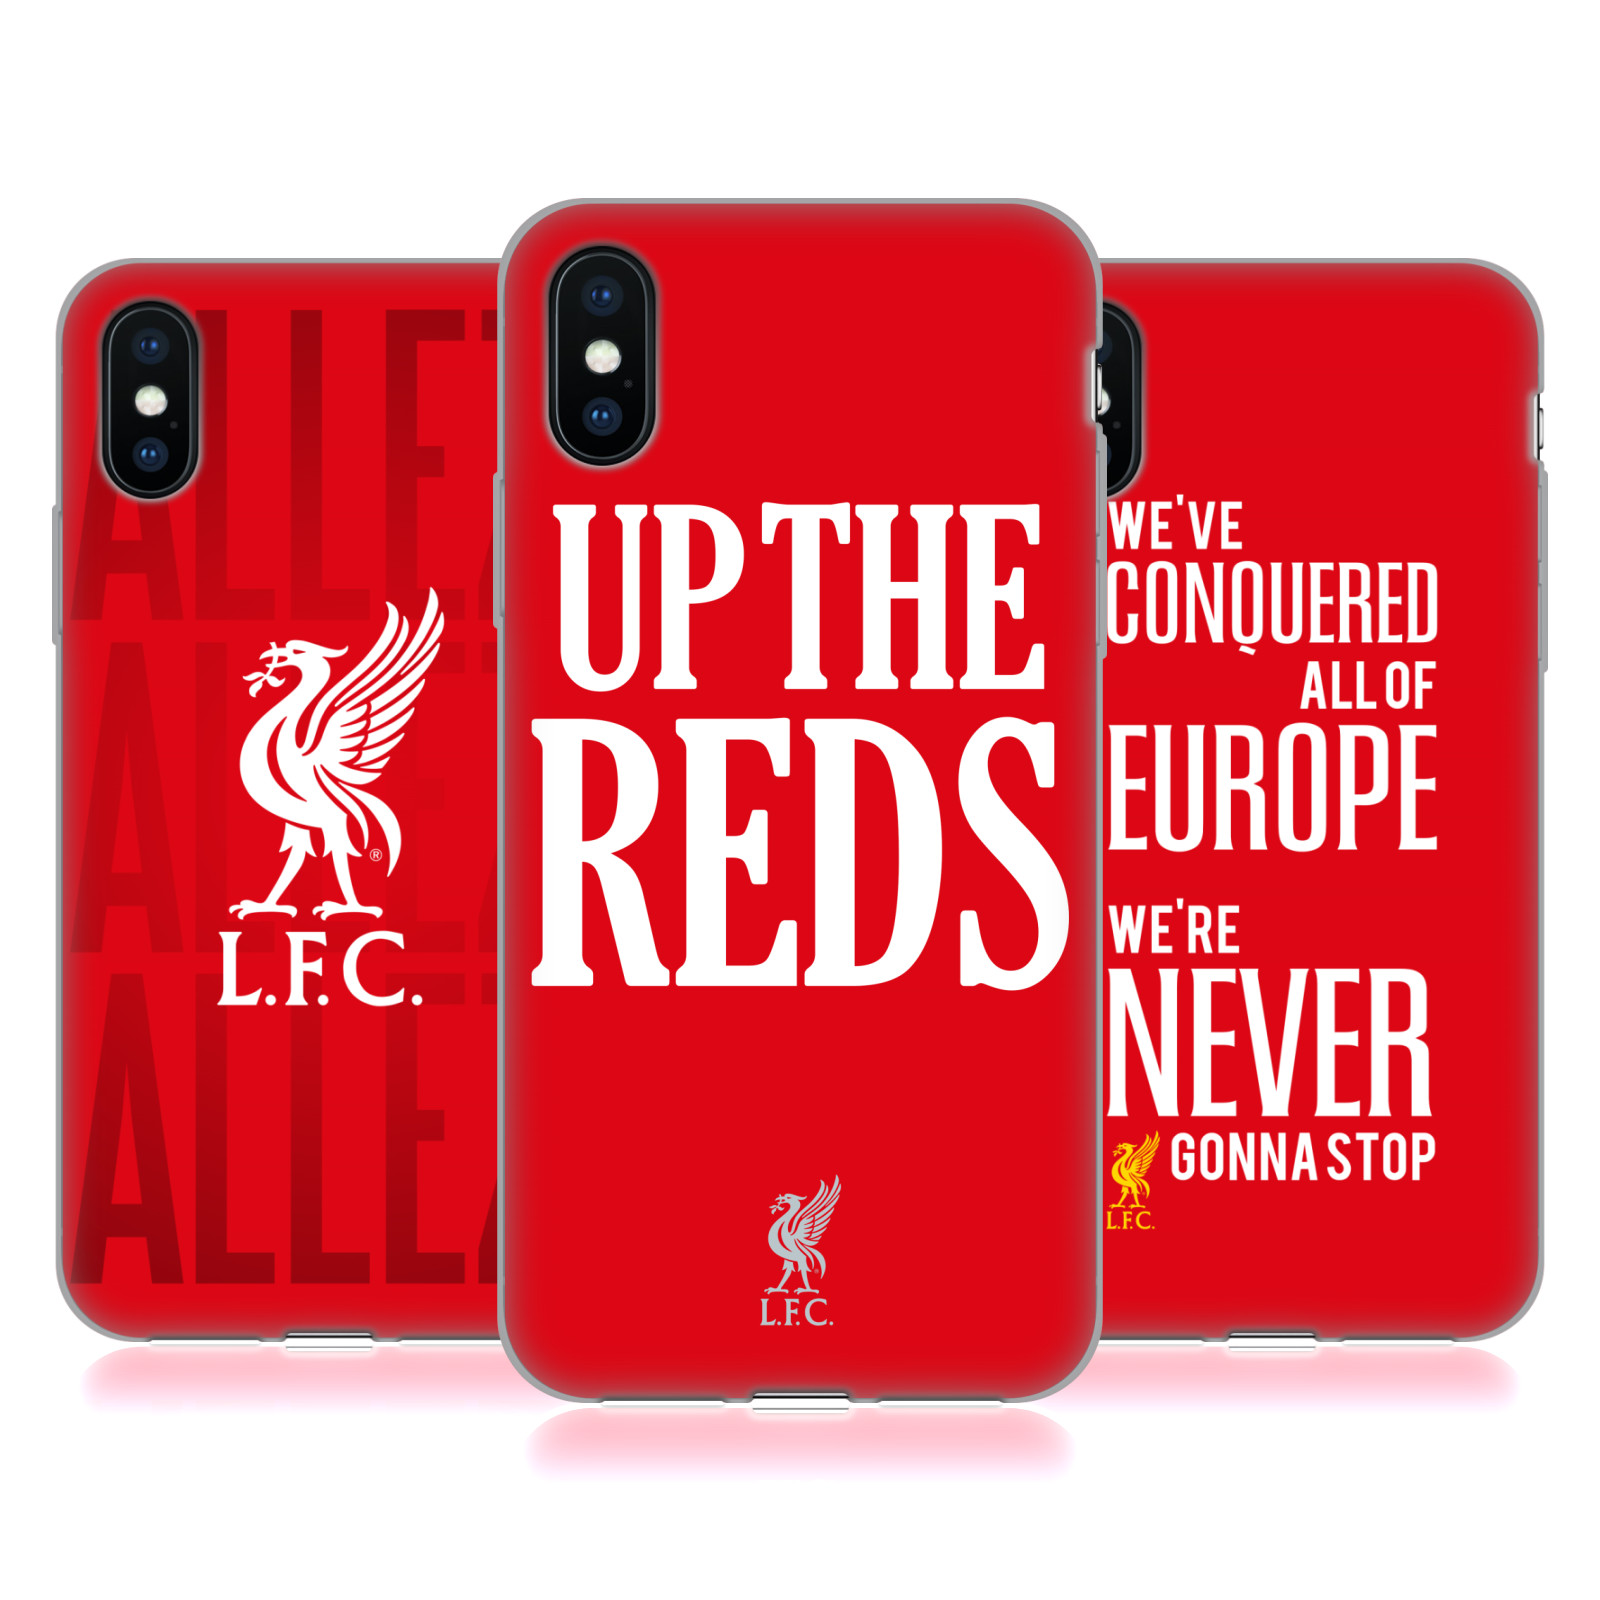 Liverpool Football Club <!--translate-lineup-->2017/18 Kings Of Europe<!--translate-lineup-->